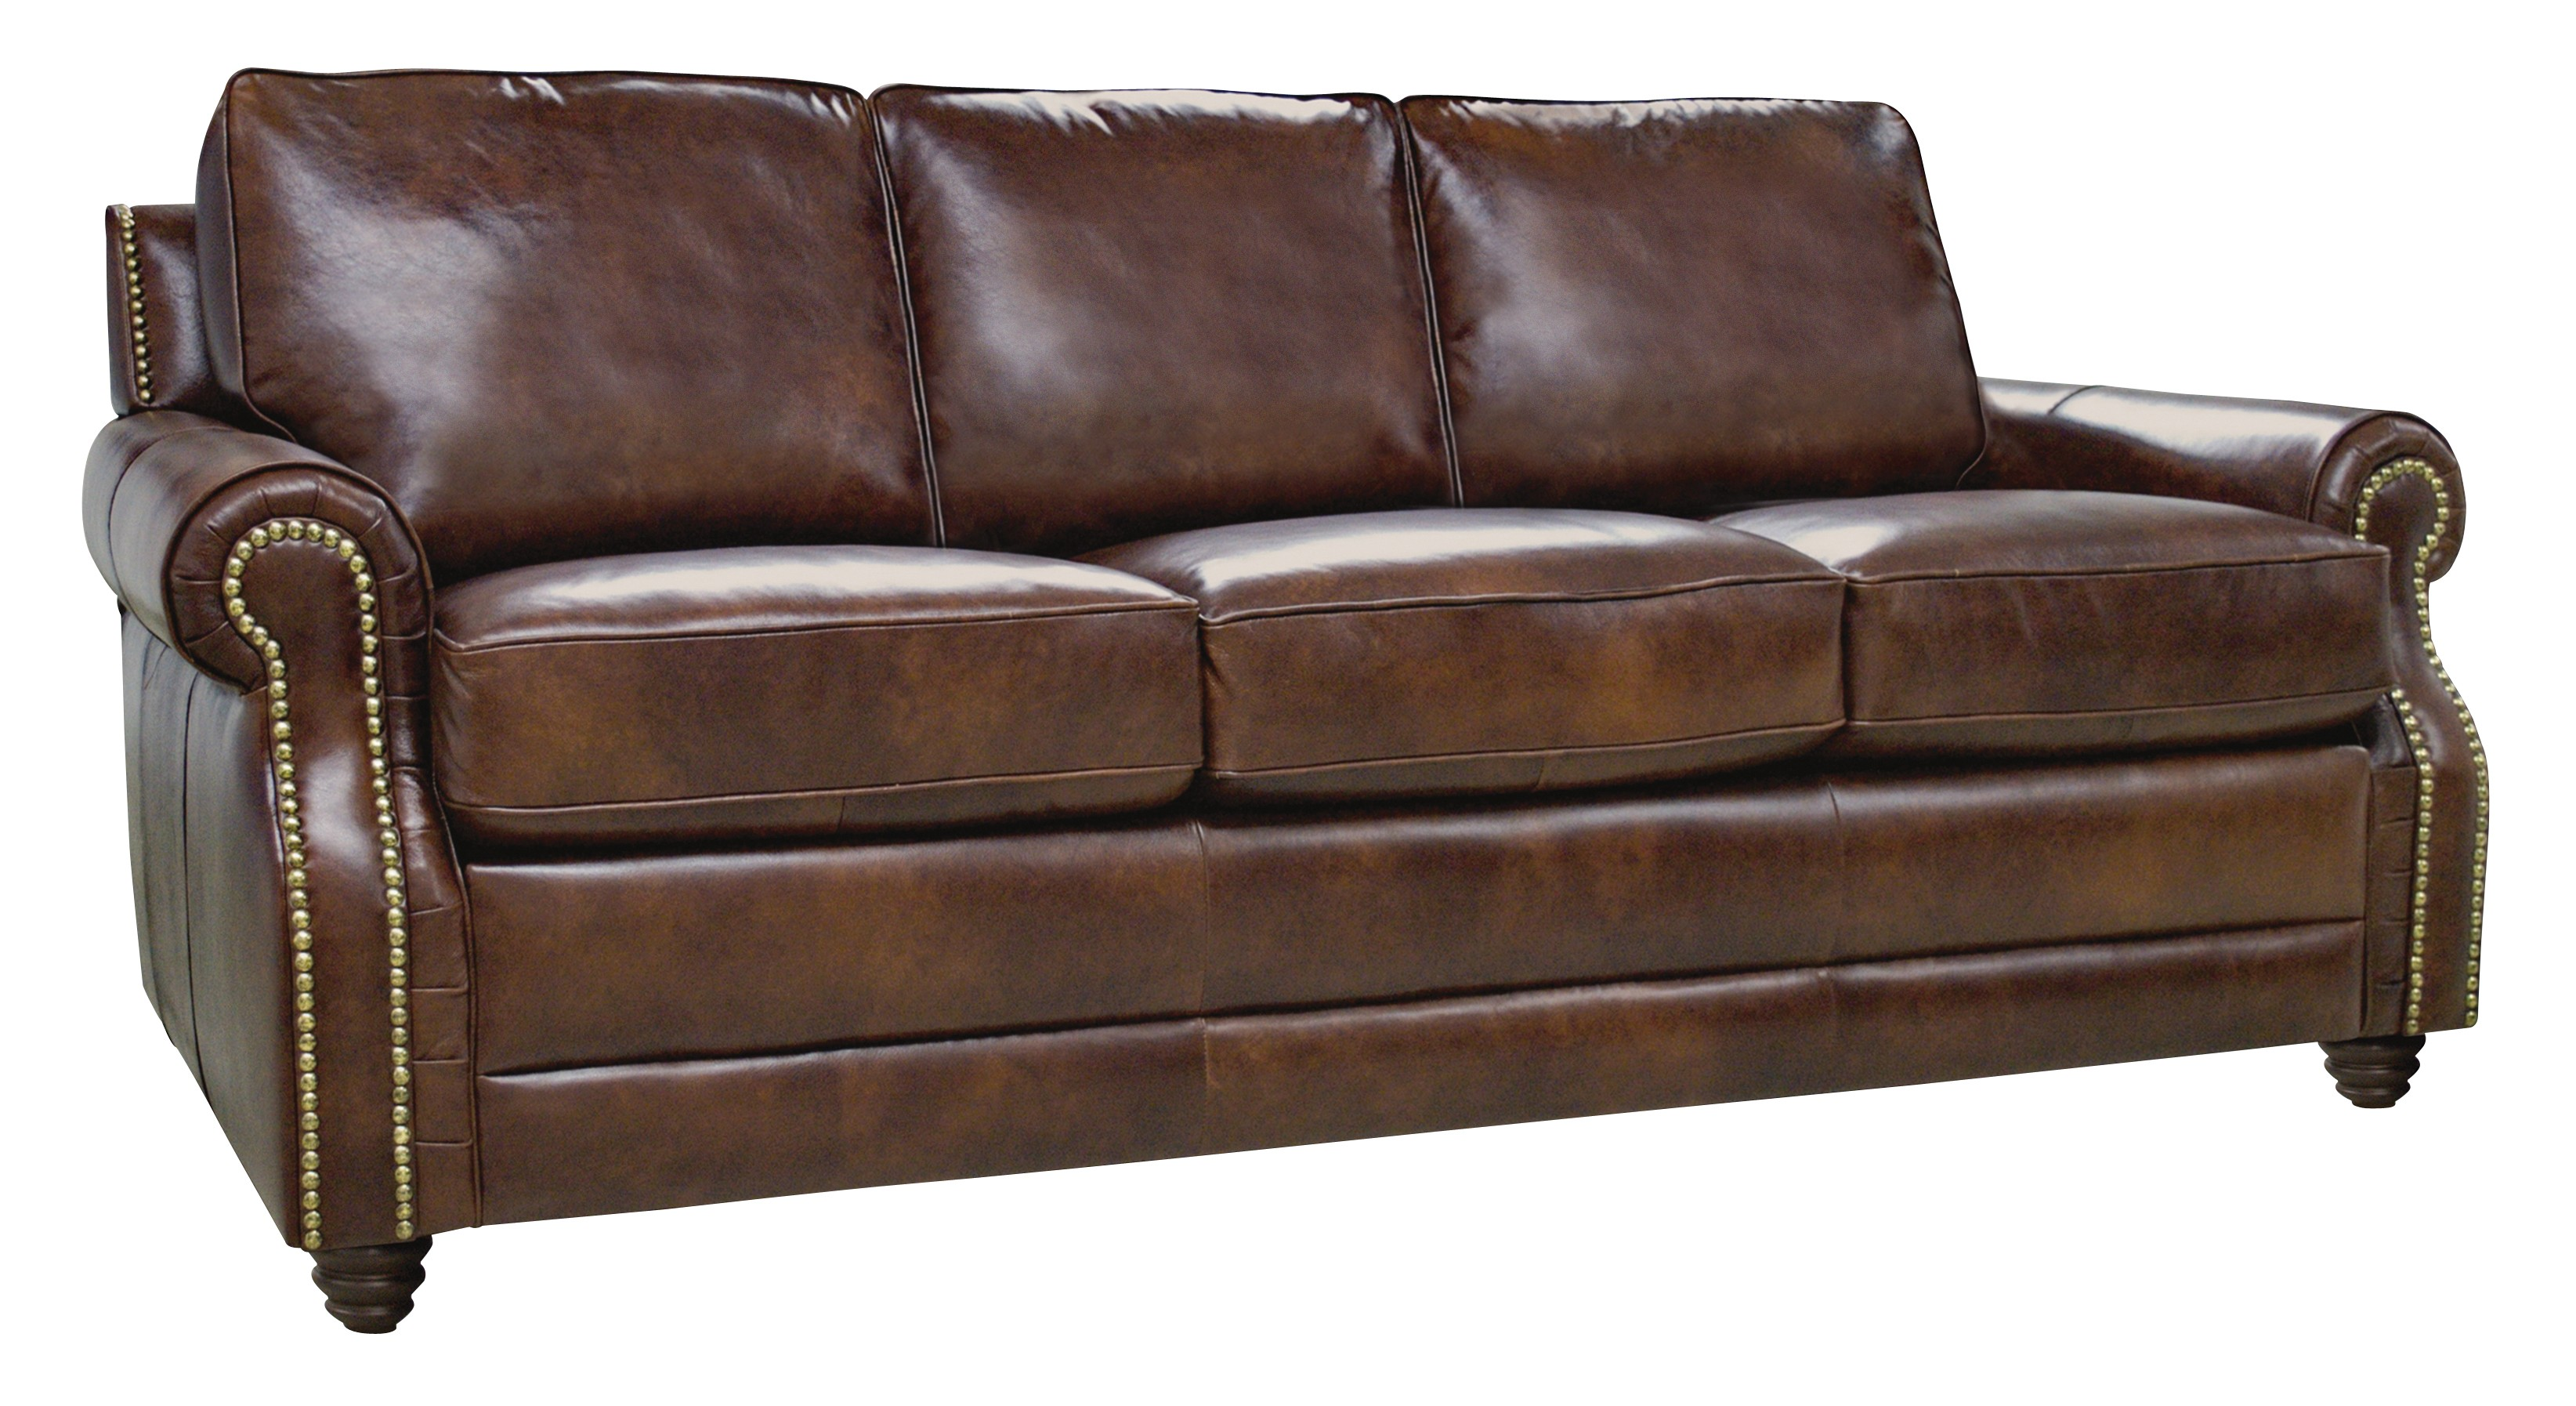 Levi italian leather sofa from luke leather coleman for Italian leather sofa